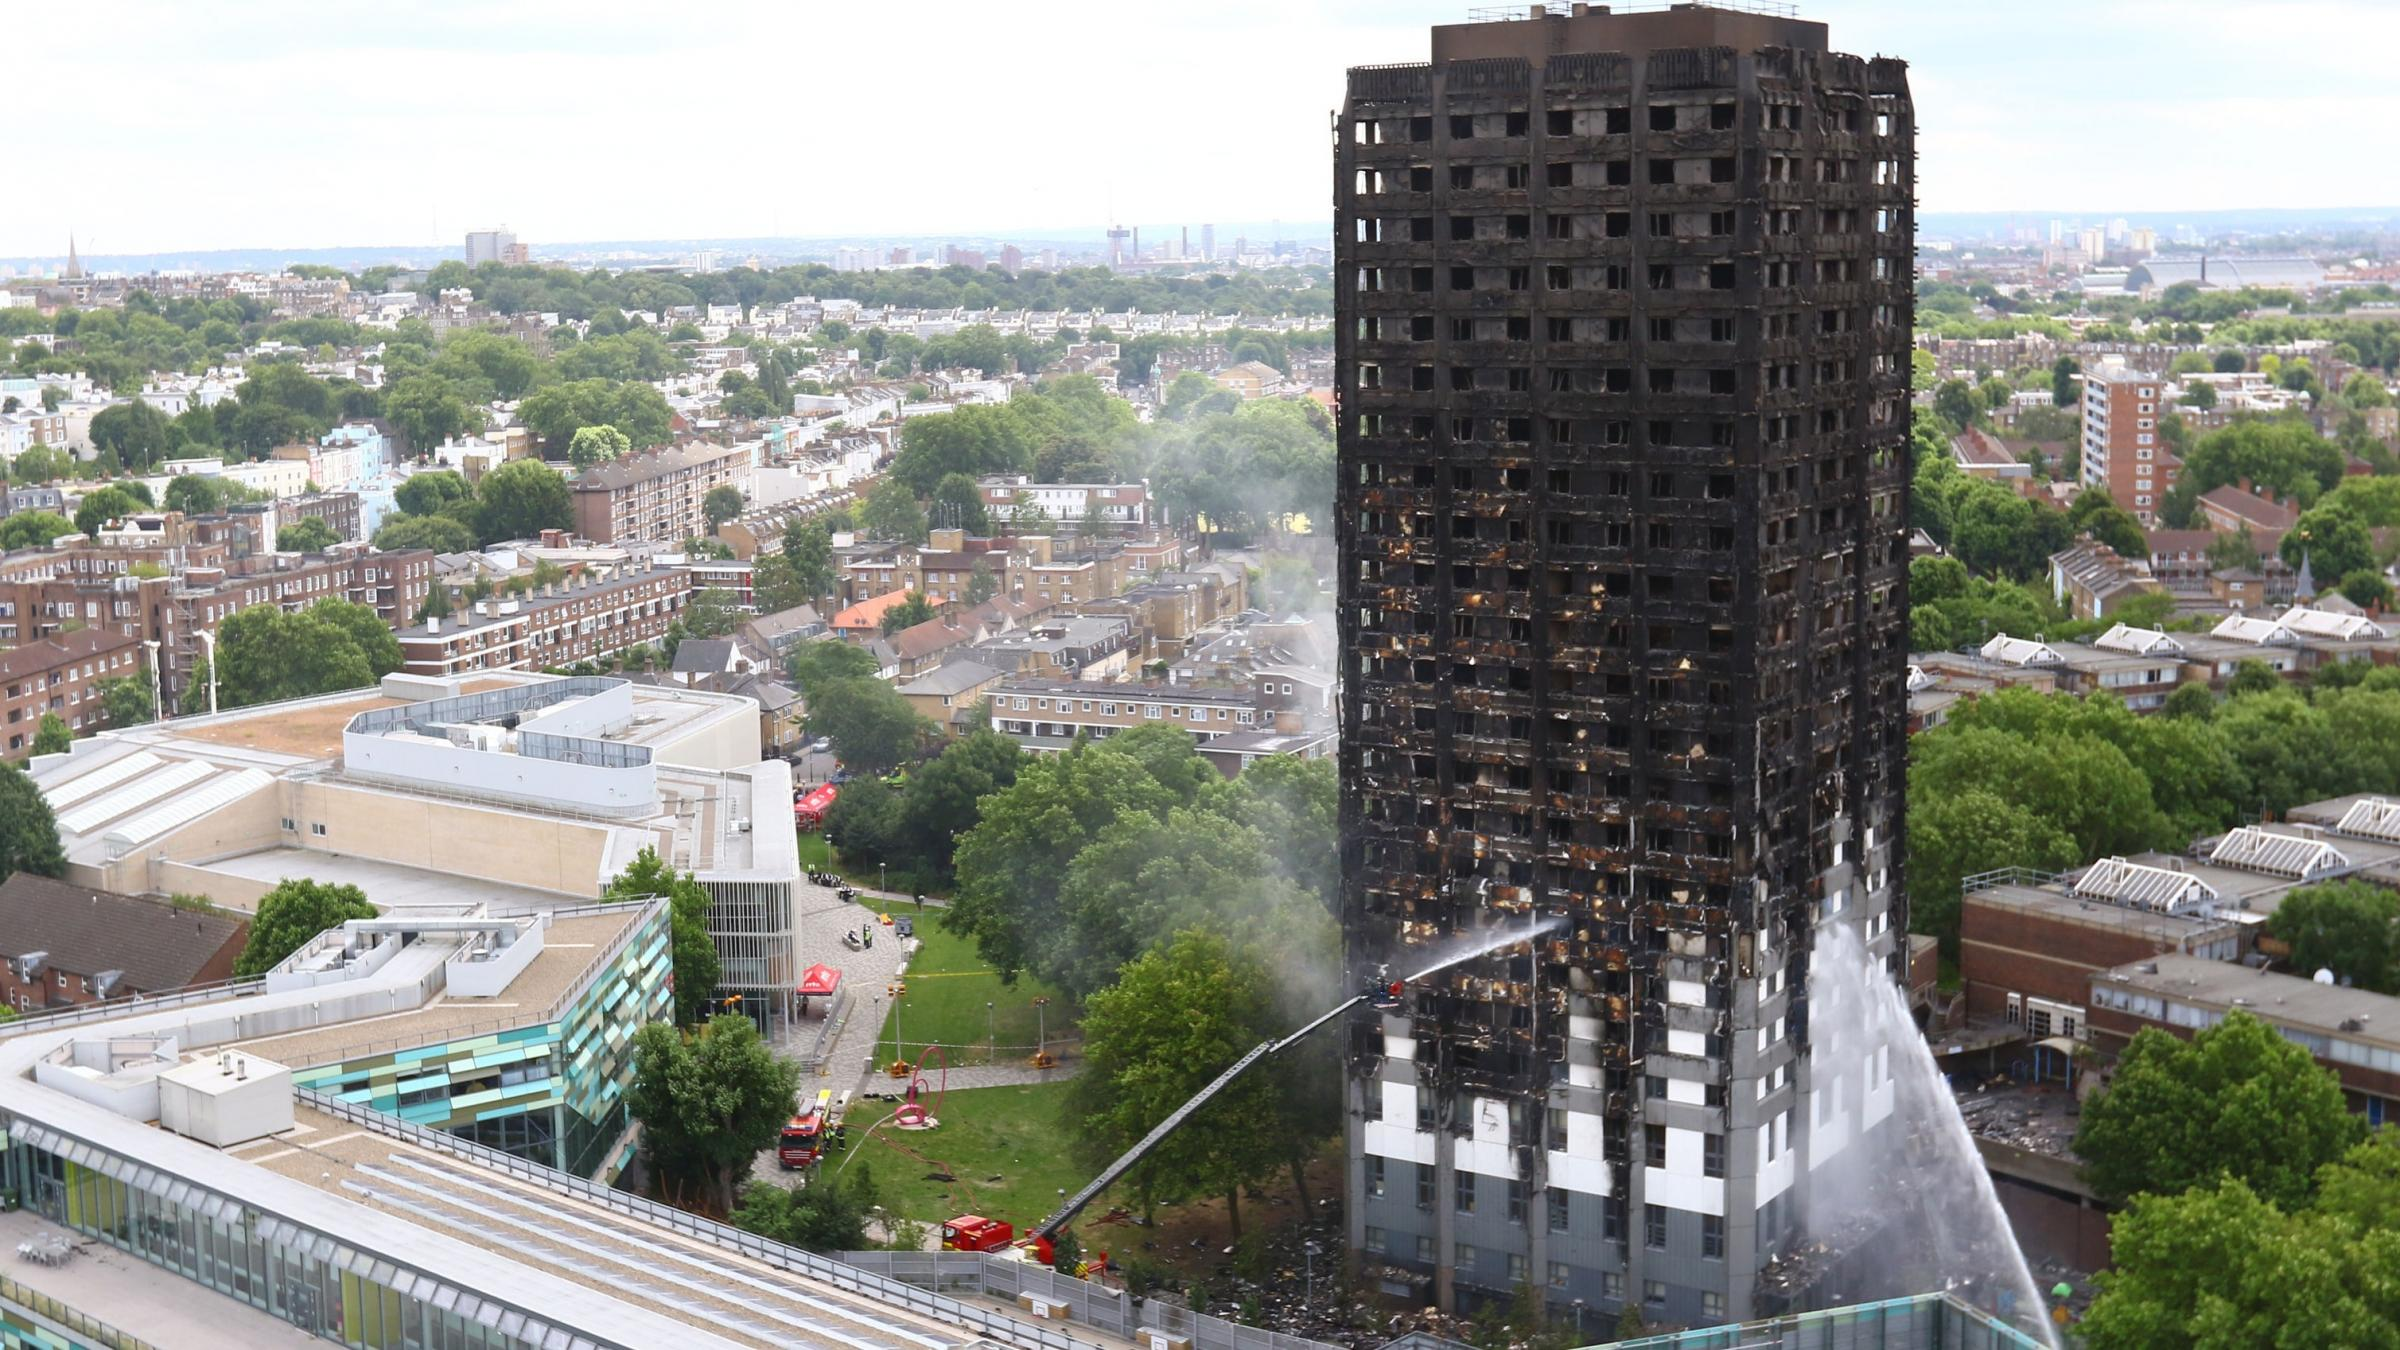 Theresa May Wants Answers About The London Apartment Tower Fire